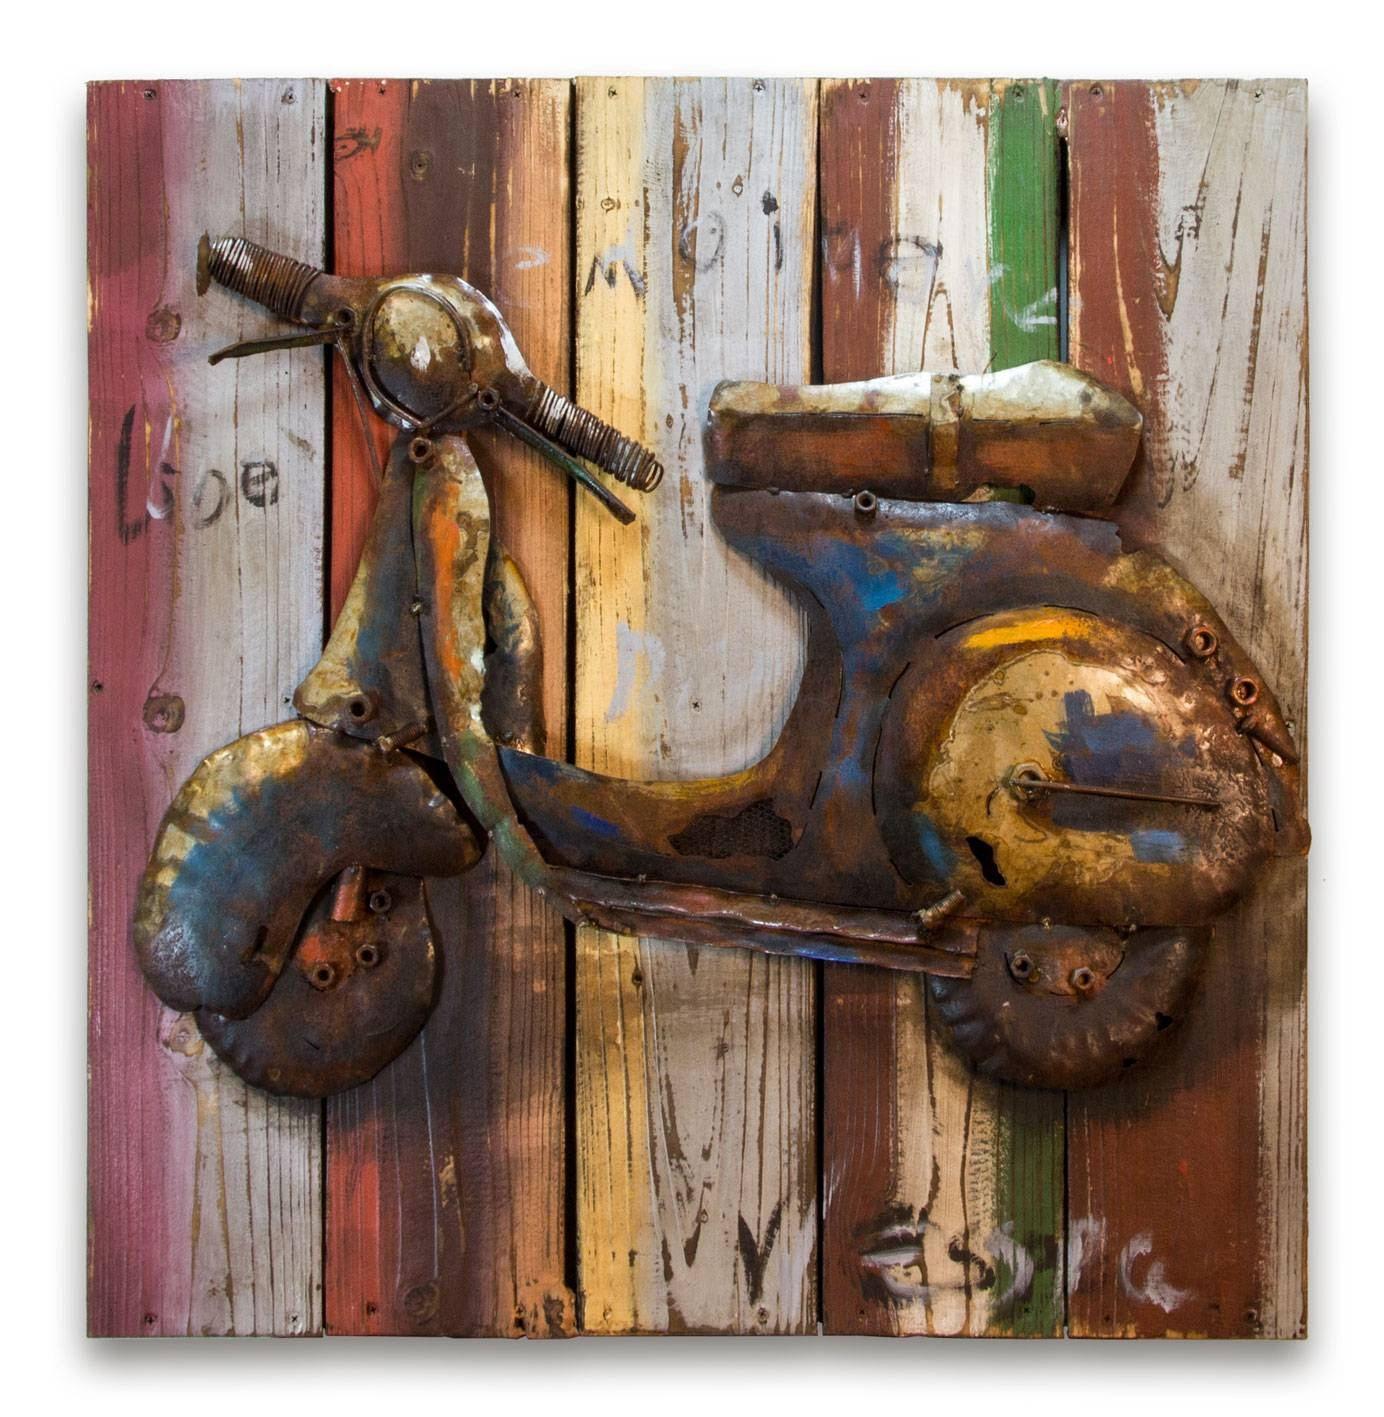 Hand Crafted 'retro Vespa' Metal Wall Art Panel Intended For 2018 Vespa 3d Wall Art (View 11 of 20)